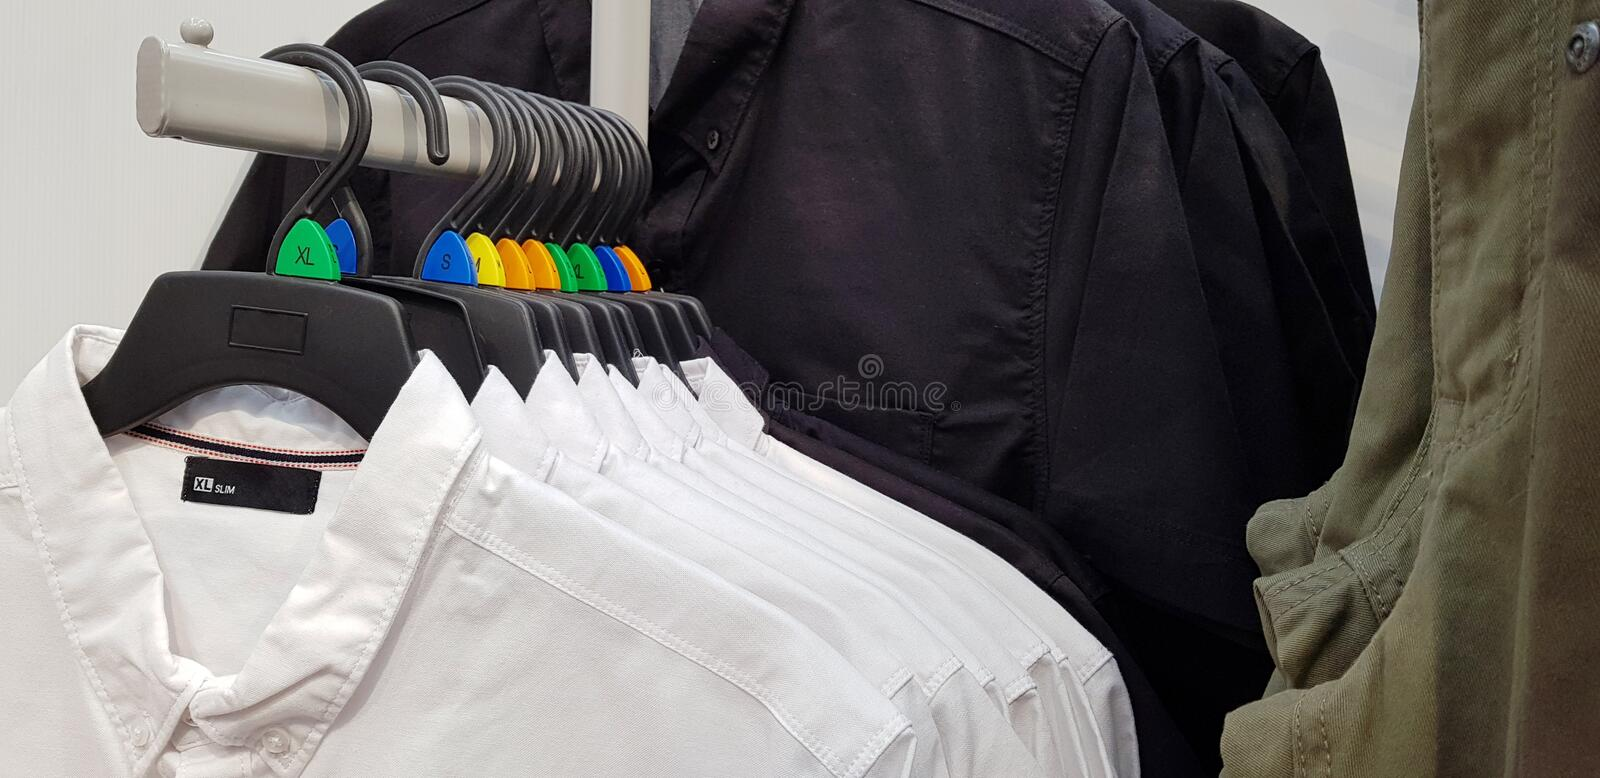 Modern clothes in a shop on a hanger. Shirts and sweaters of different colors and denim for youth. Clothes of different styles on stock image